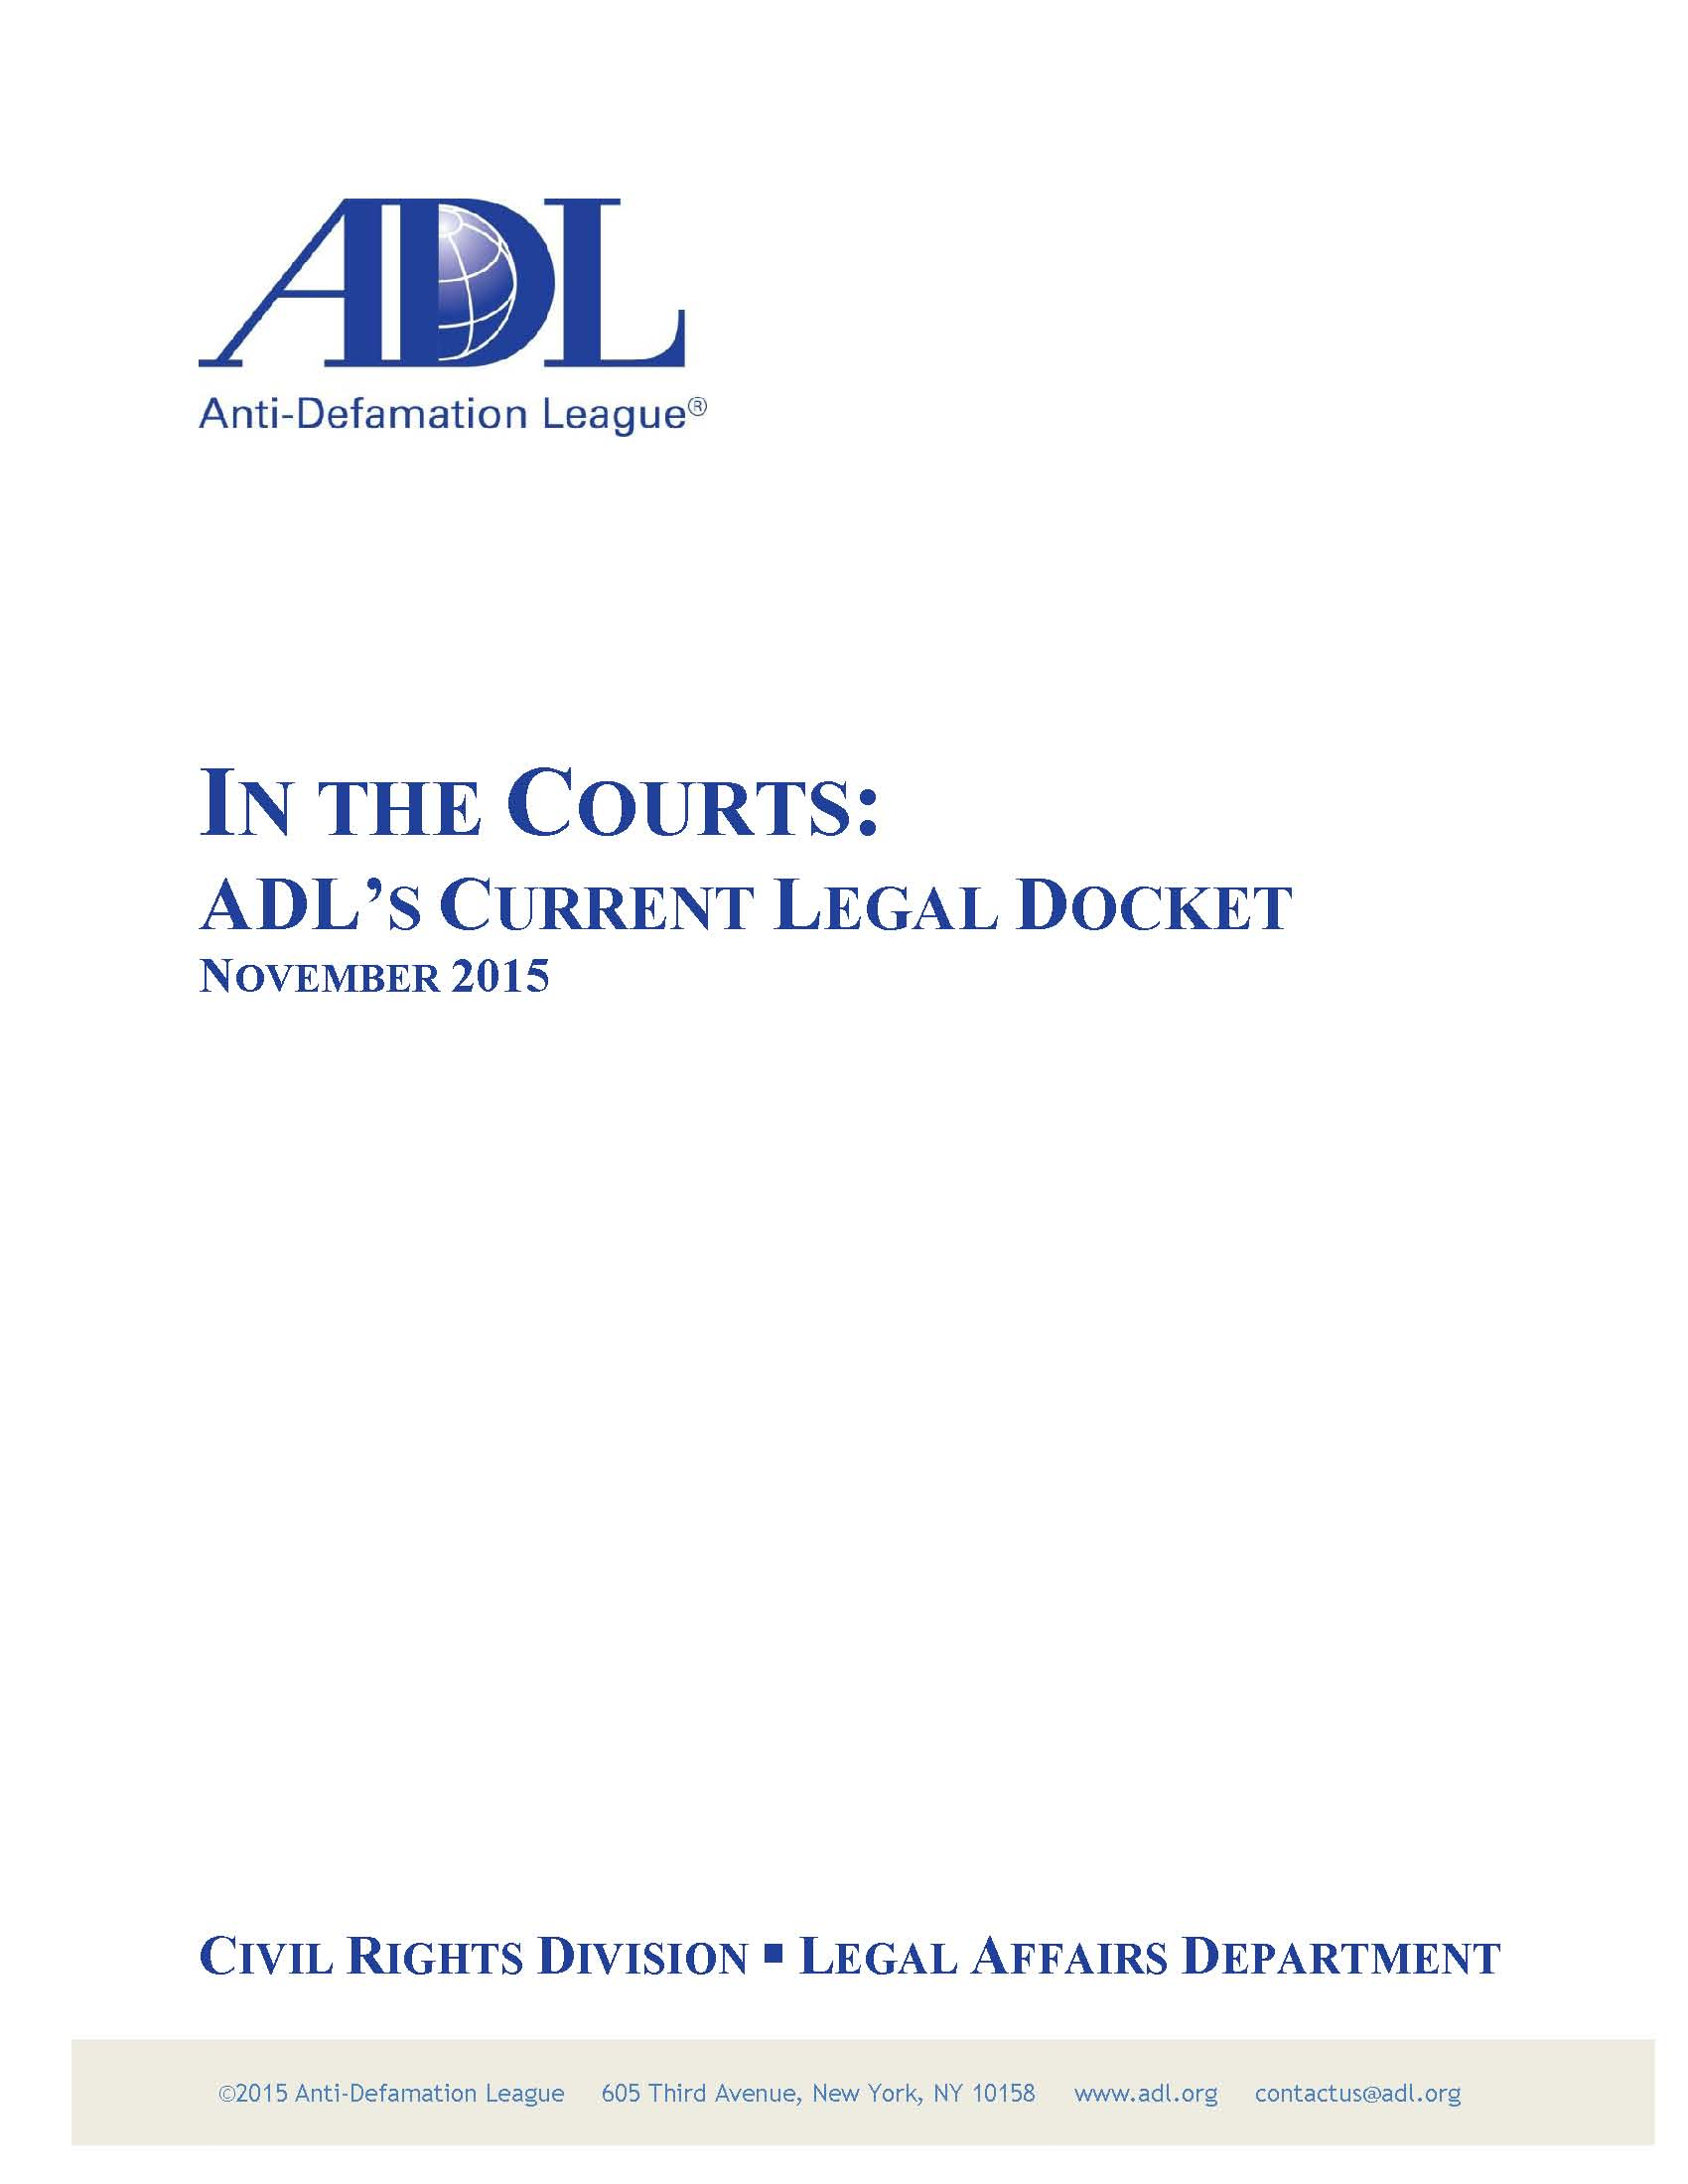 ADL in the Courts: November 2015